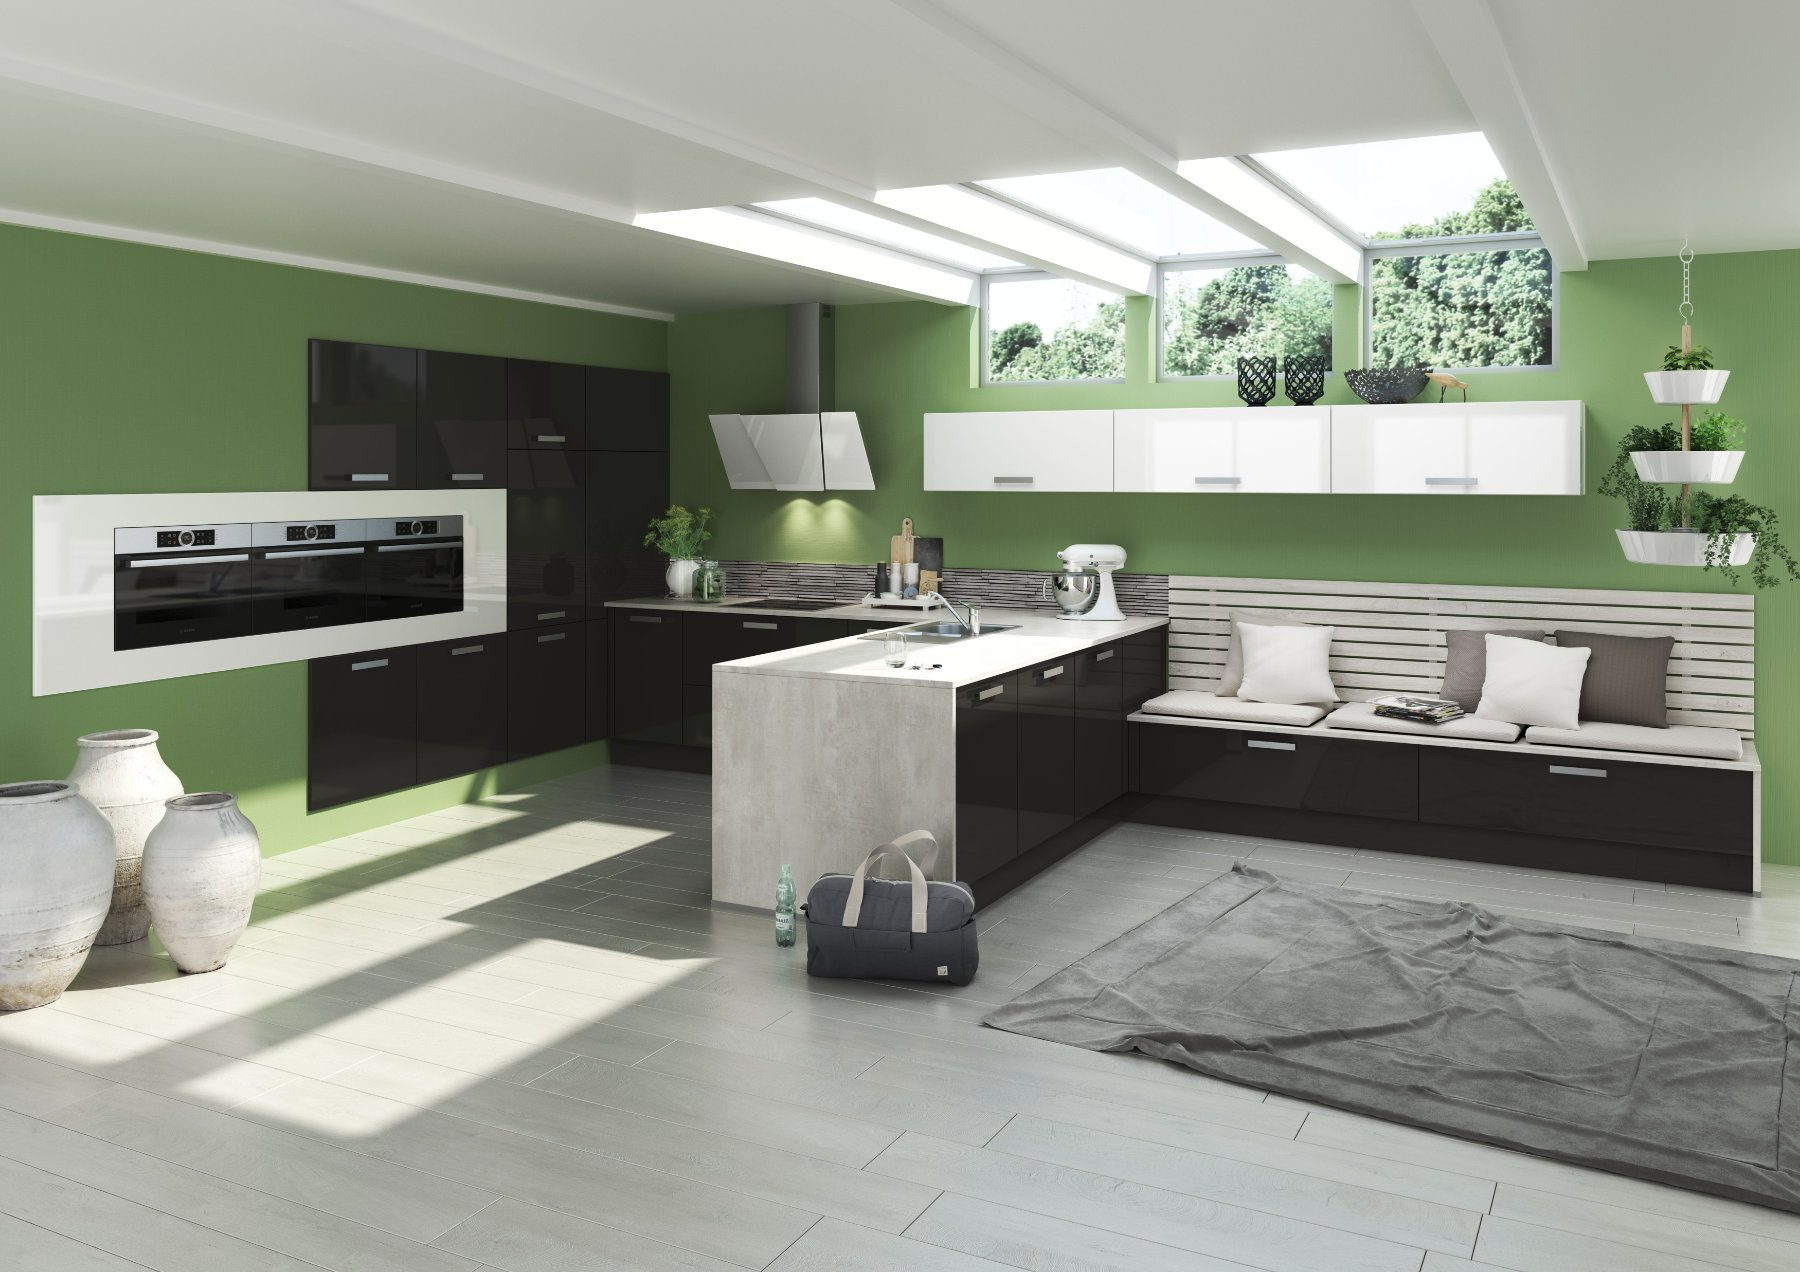 Bauformat Monochrome Gloss Kitchen With Lime Green Wall 2   MHK Kitchen Experts